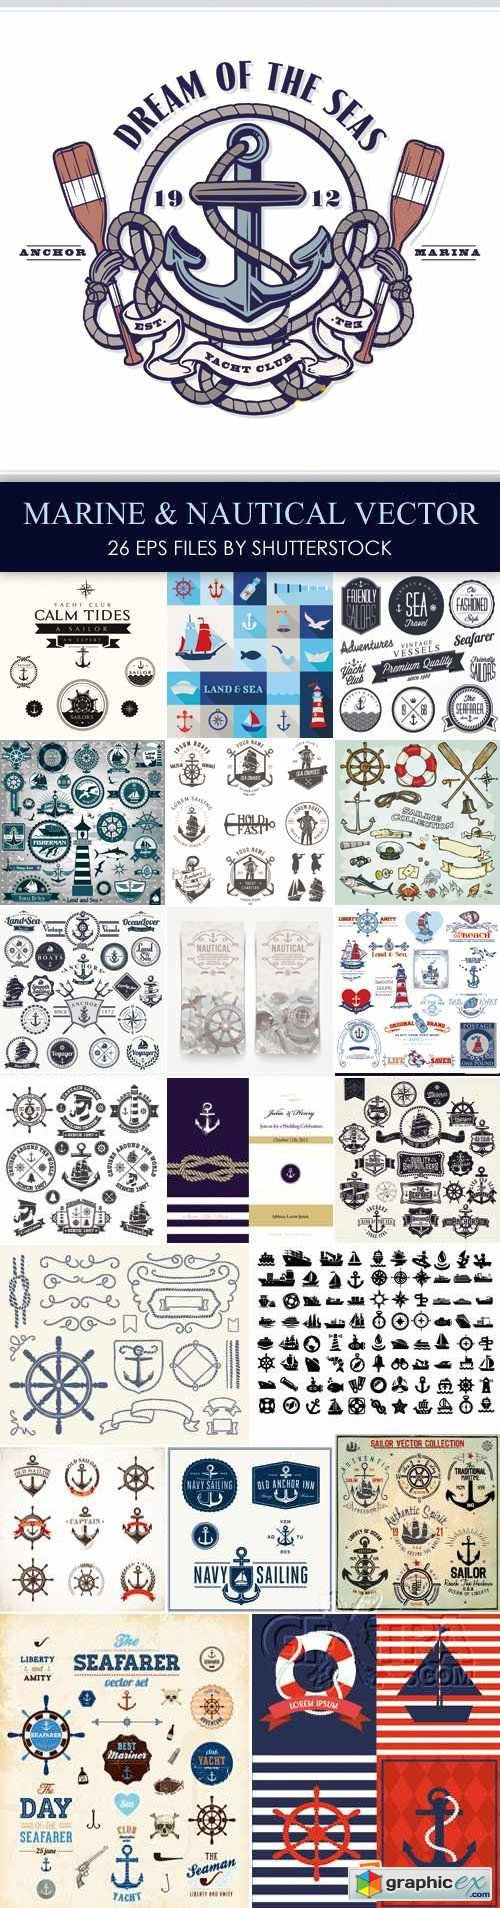 Stock Vector - Marine & Nautical Elements